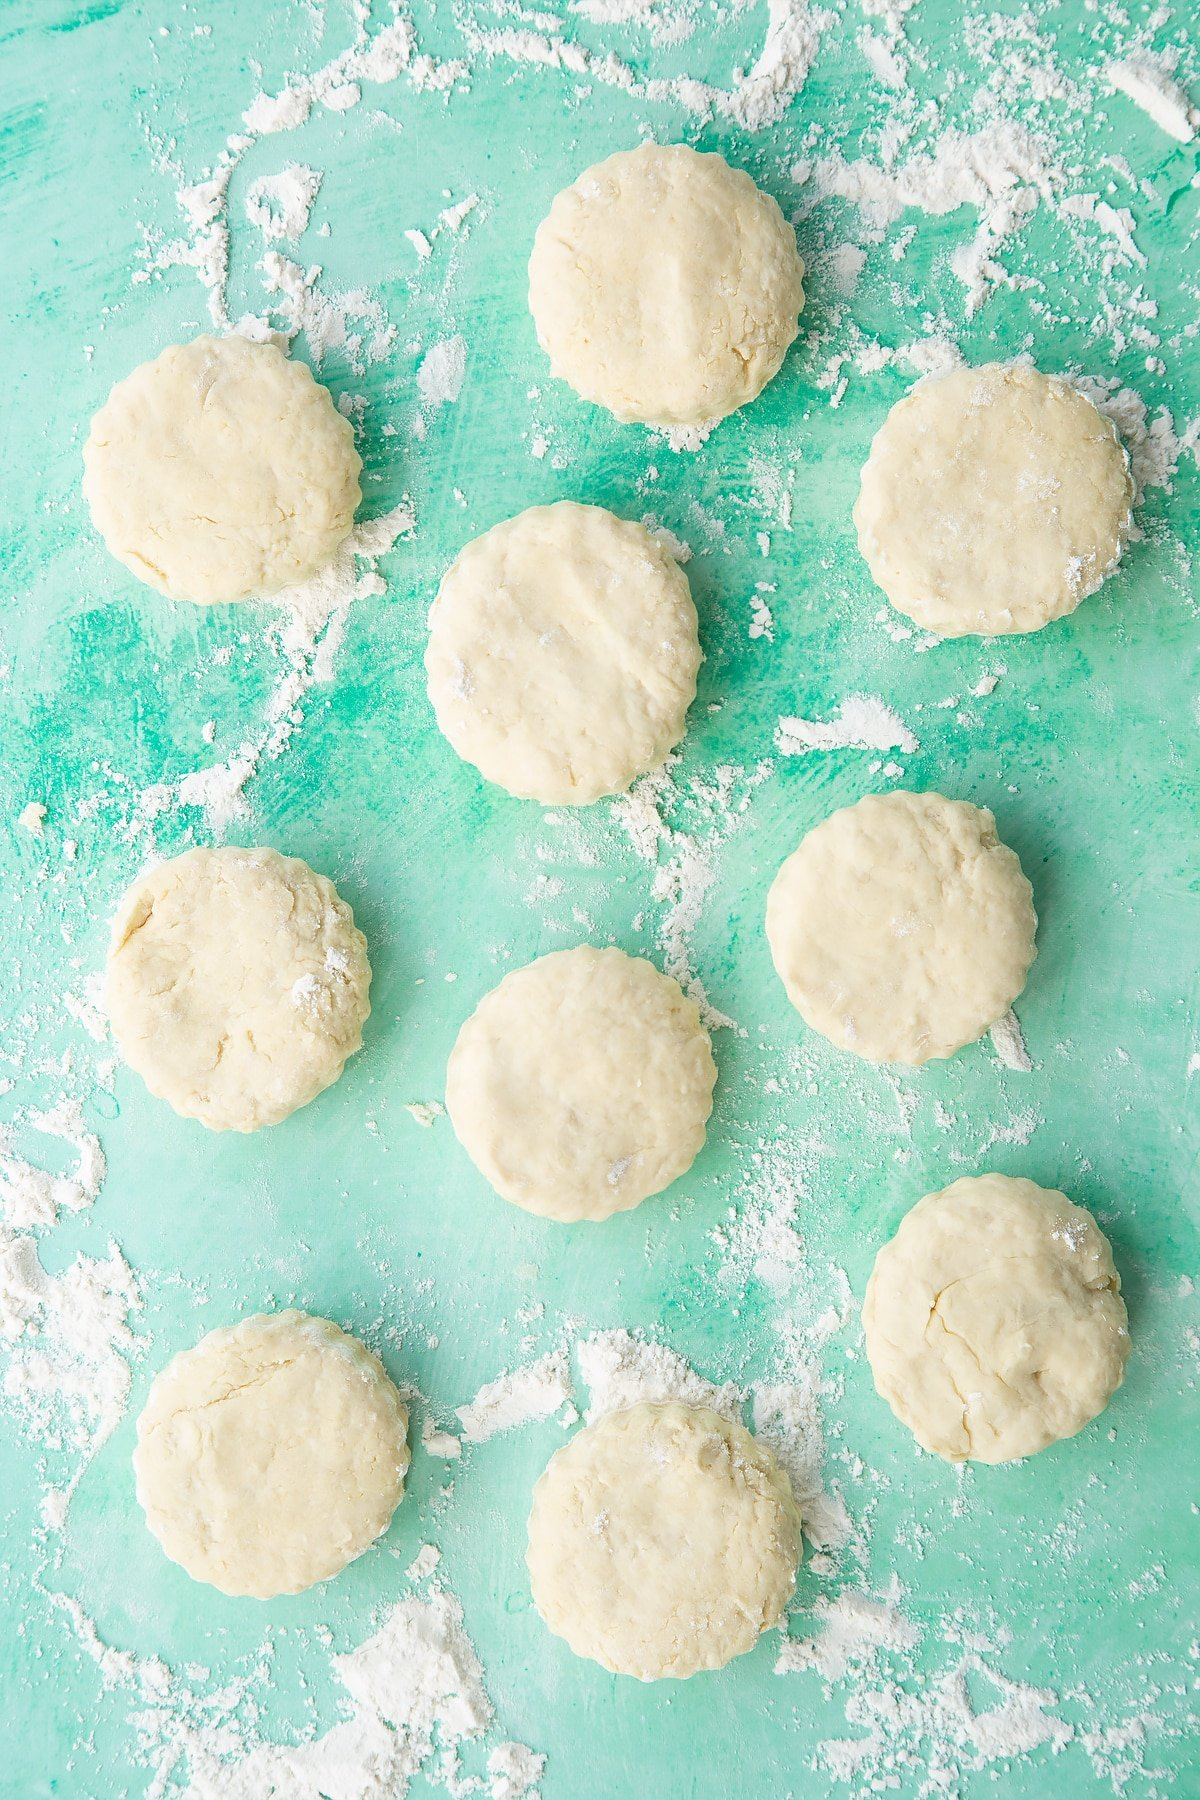 Dairy free scone rounds on a floured surface.